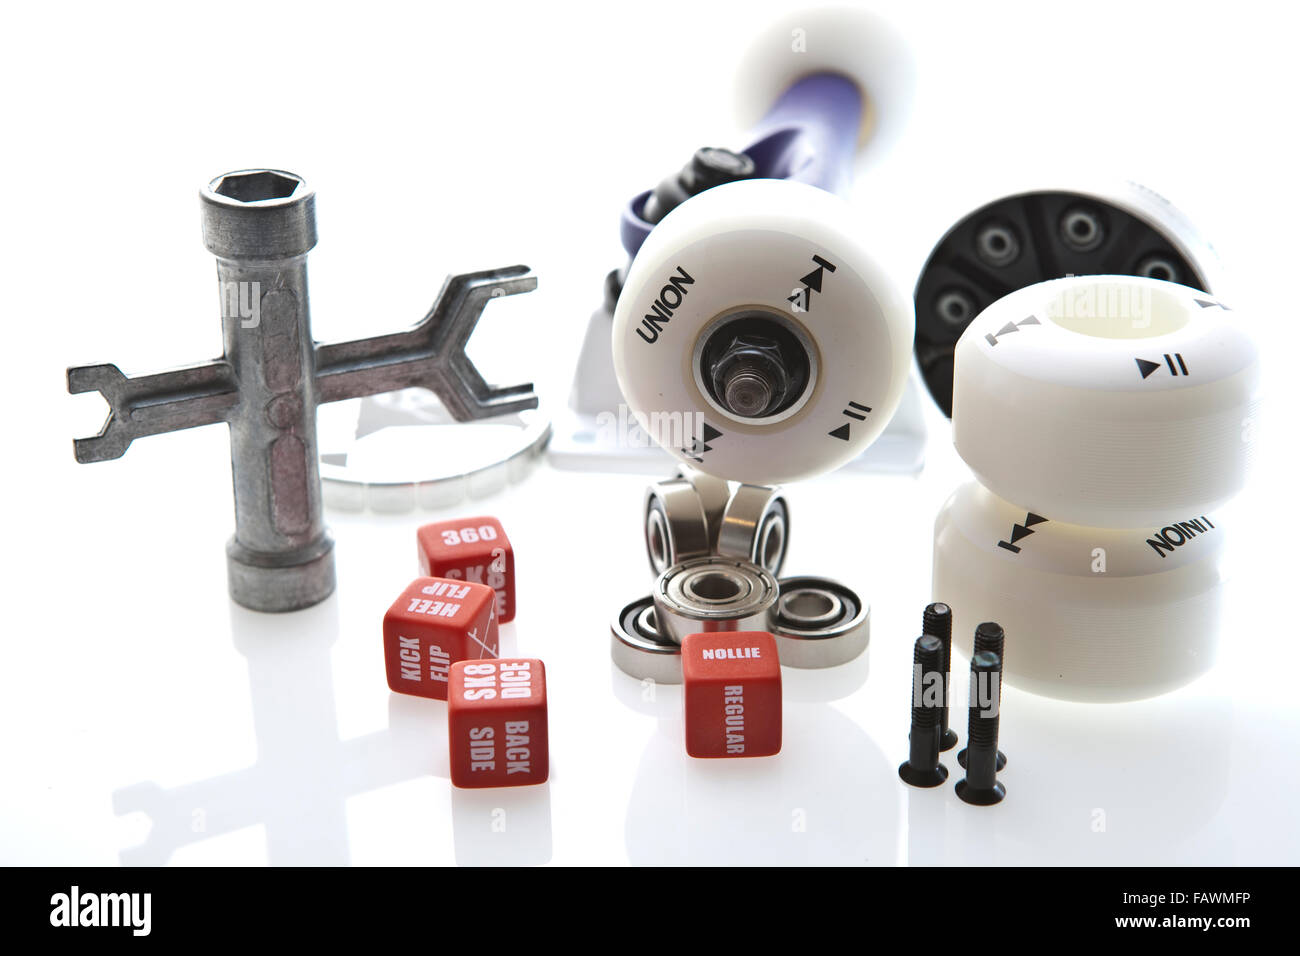 Skate Board Wheels Wrench bolts and bearings on a background - Stock Image